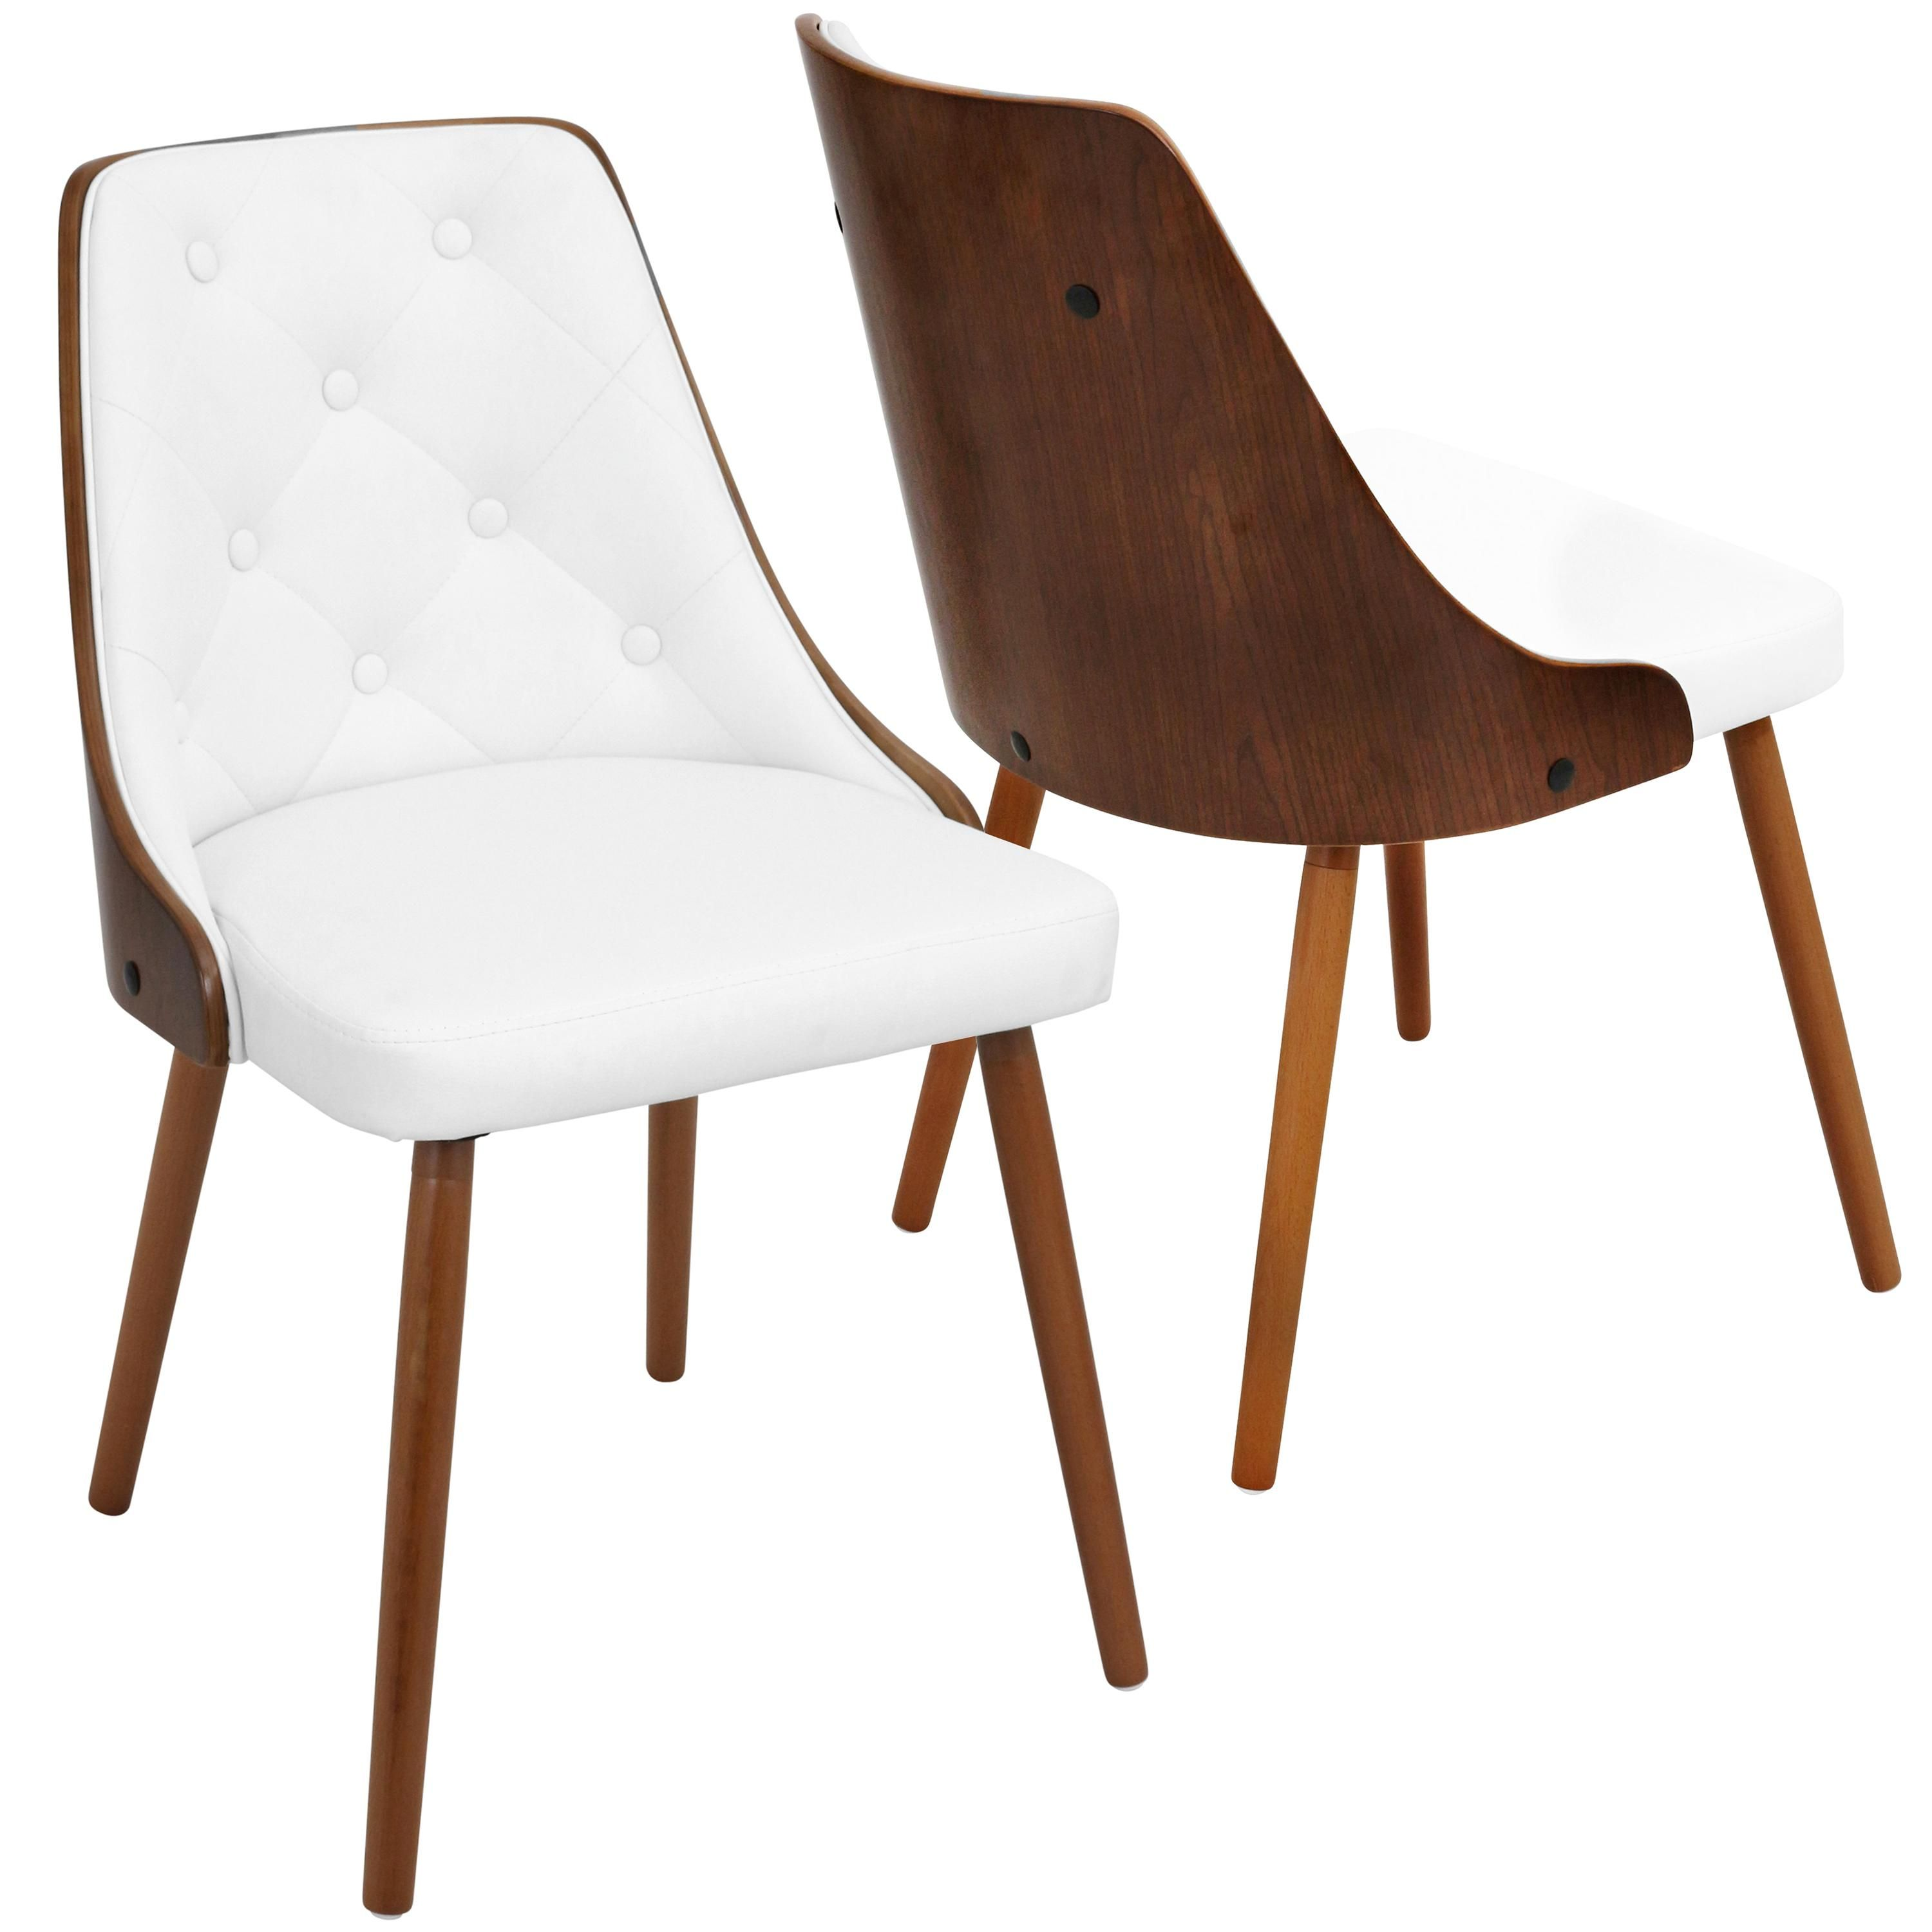 Mid Century White And Brown Faux Leather Dining Room Chair Gianna In 2020 Leather Dining Room Chairs Modern Dining Chairs Dining Chairs